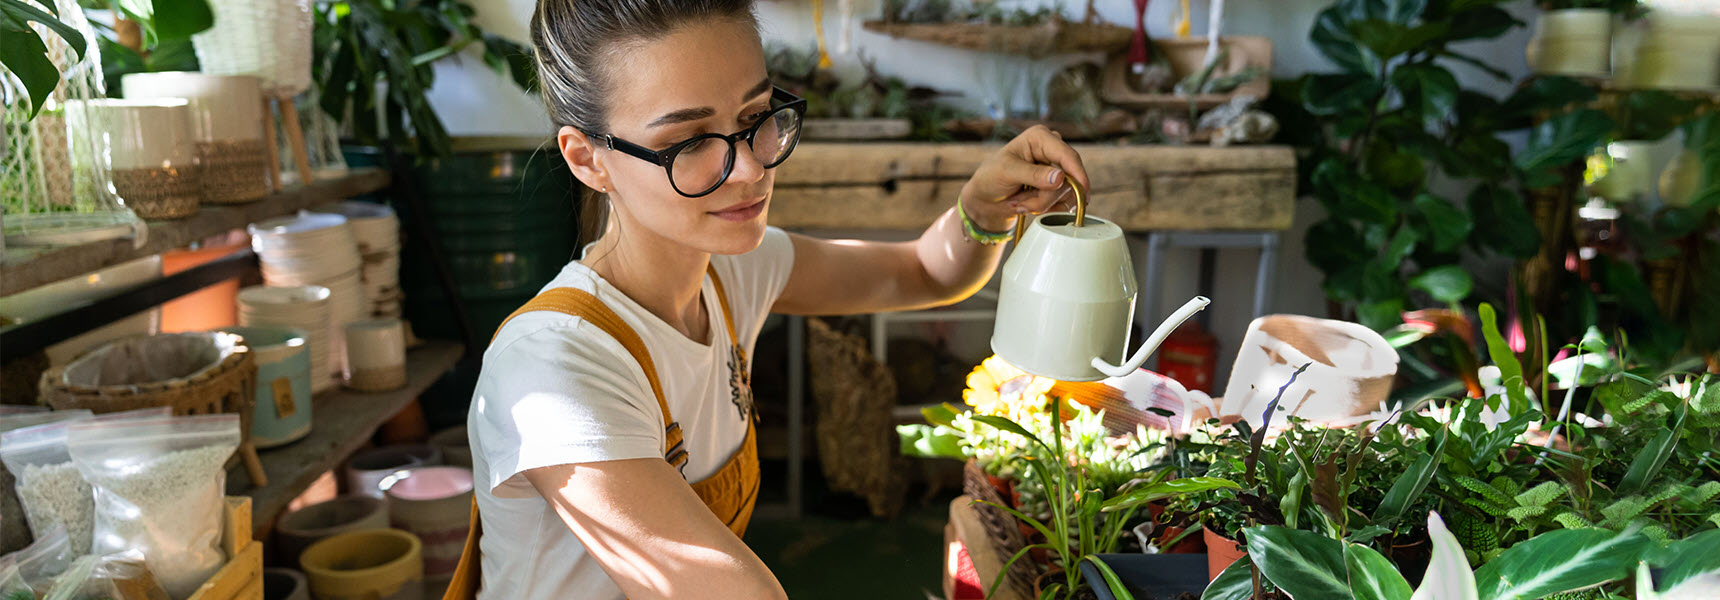 Photo of woman watering plants in a greenhouse depict someone beginning to invest money.